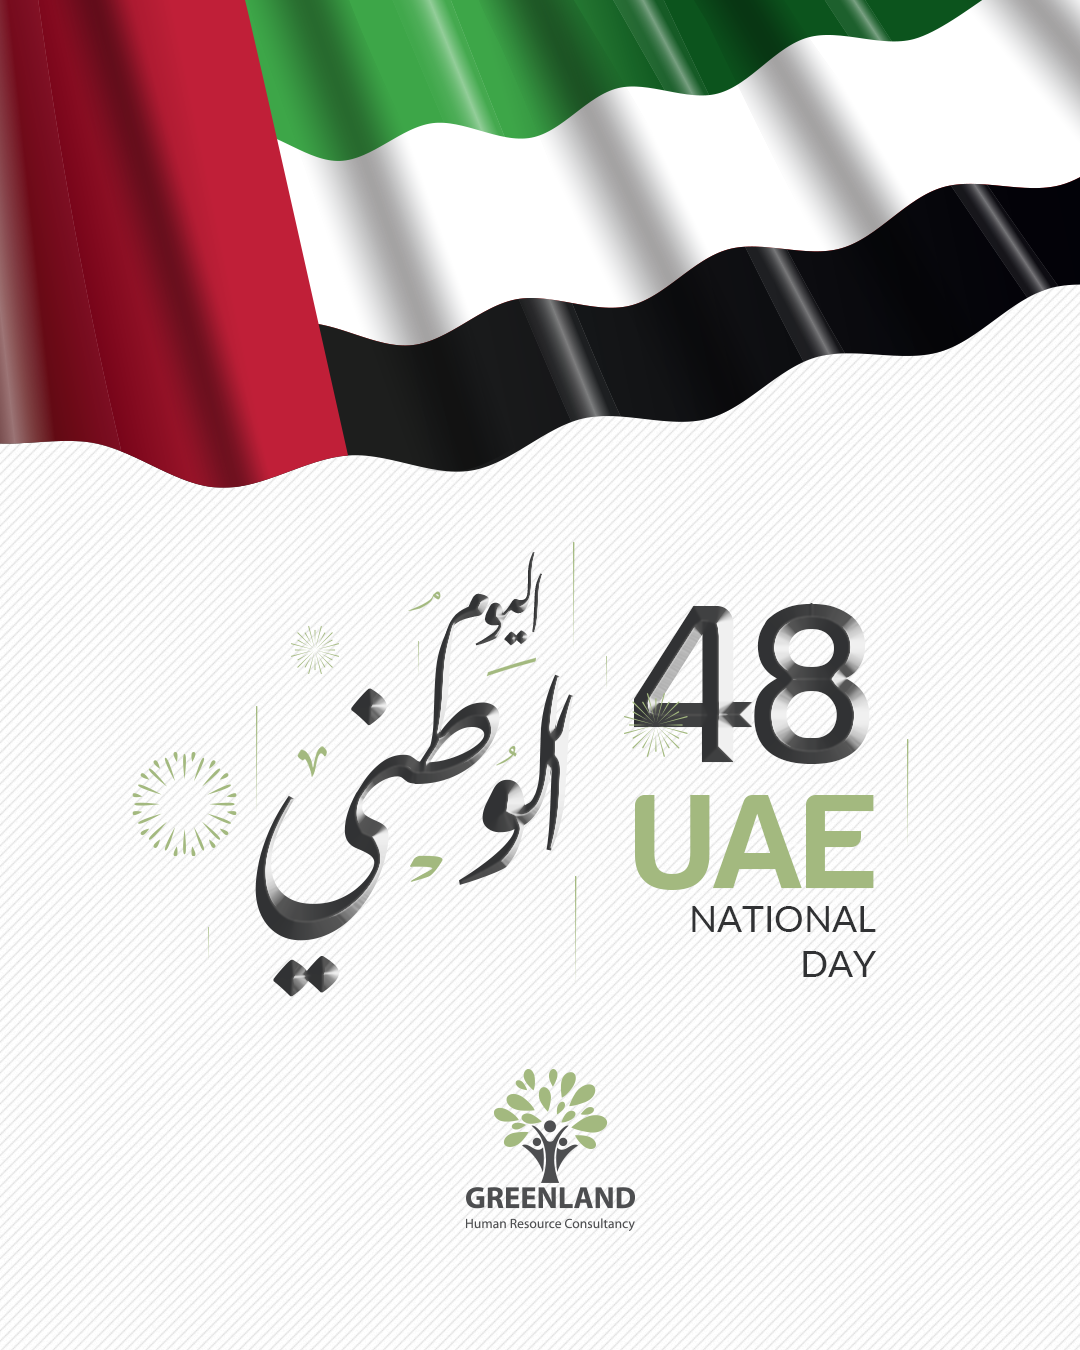 Greenland UAE wishes happiness and prosperity this 48th UAE National Day! May this day be truly memorable to all of us as we stand together in unity and with great pride in belonging to the UAE.🇦🇪  #GreenlandUAE #48thuaenationalday #uaenationalday #unitedarabemirates #uae #nationalday #dubai #abudhabi #sharjah #fujairah #ajman #ummalquwain #rasalkhaimah #emirati #uaenationalday2019